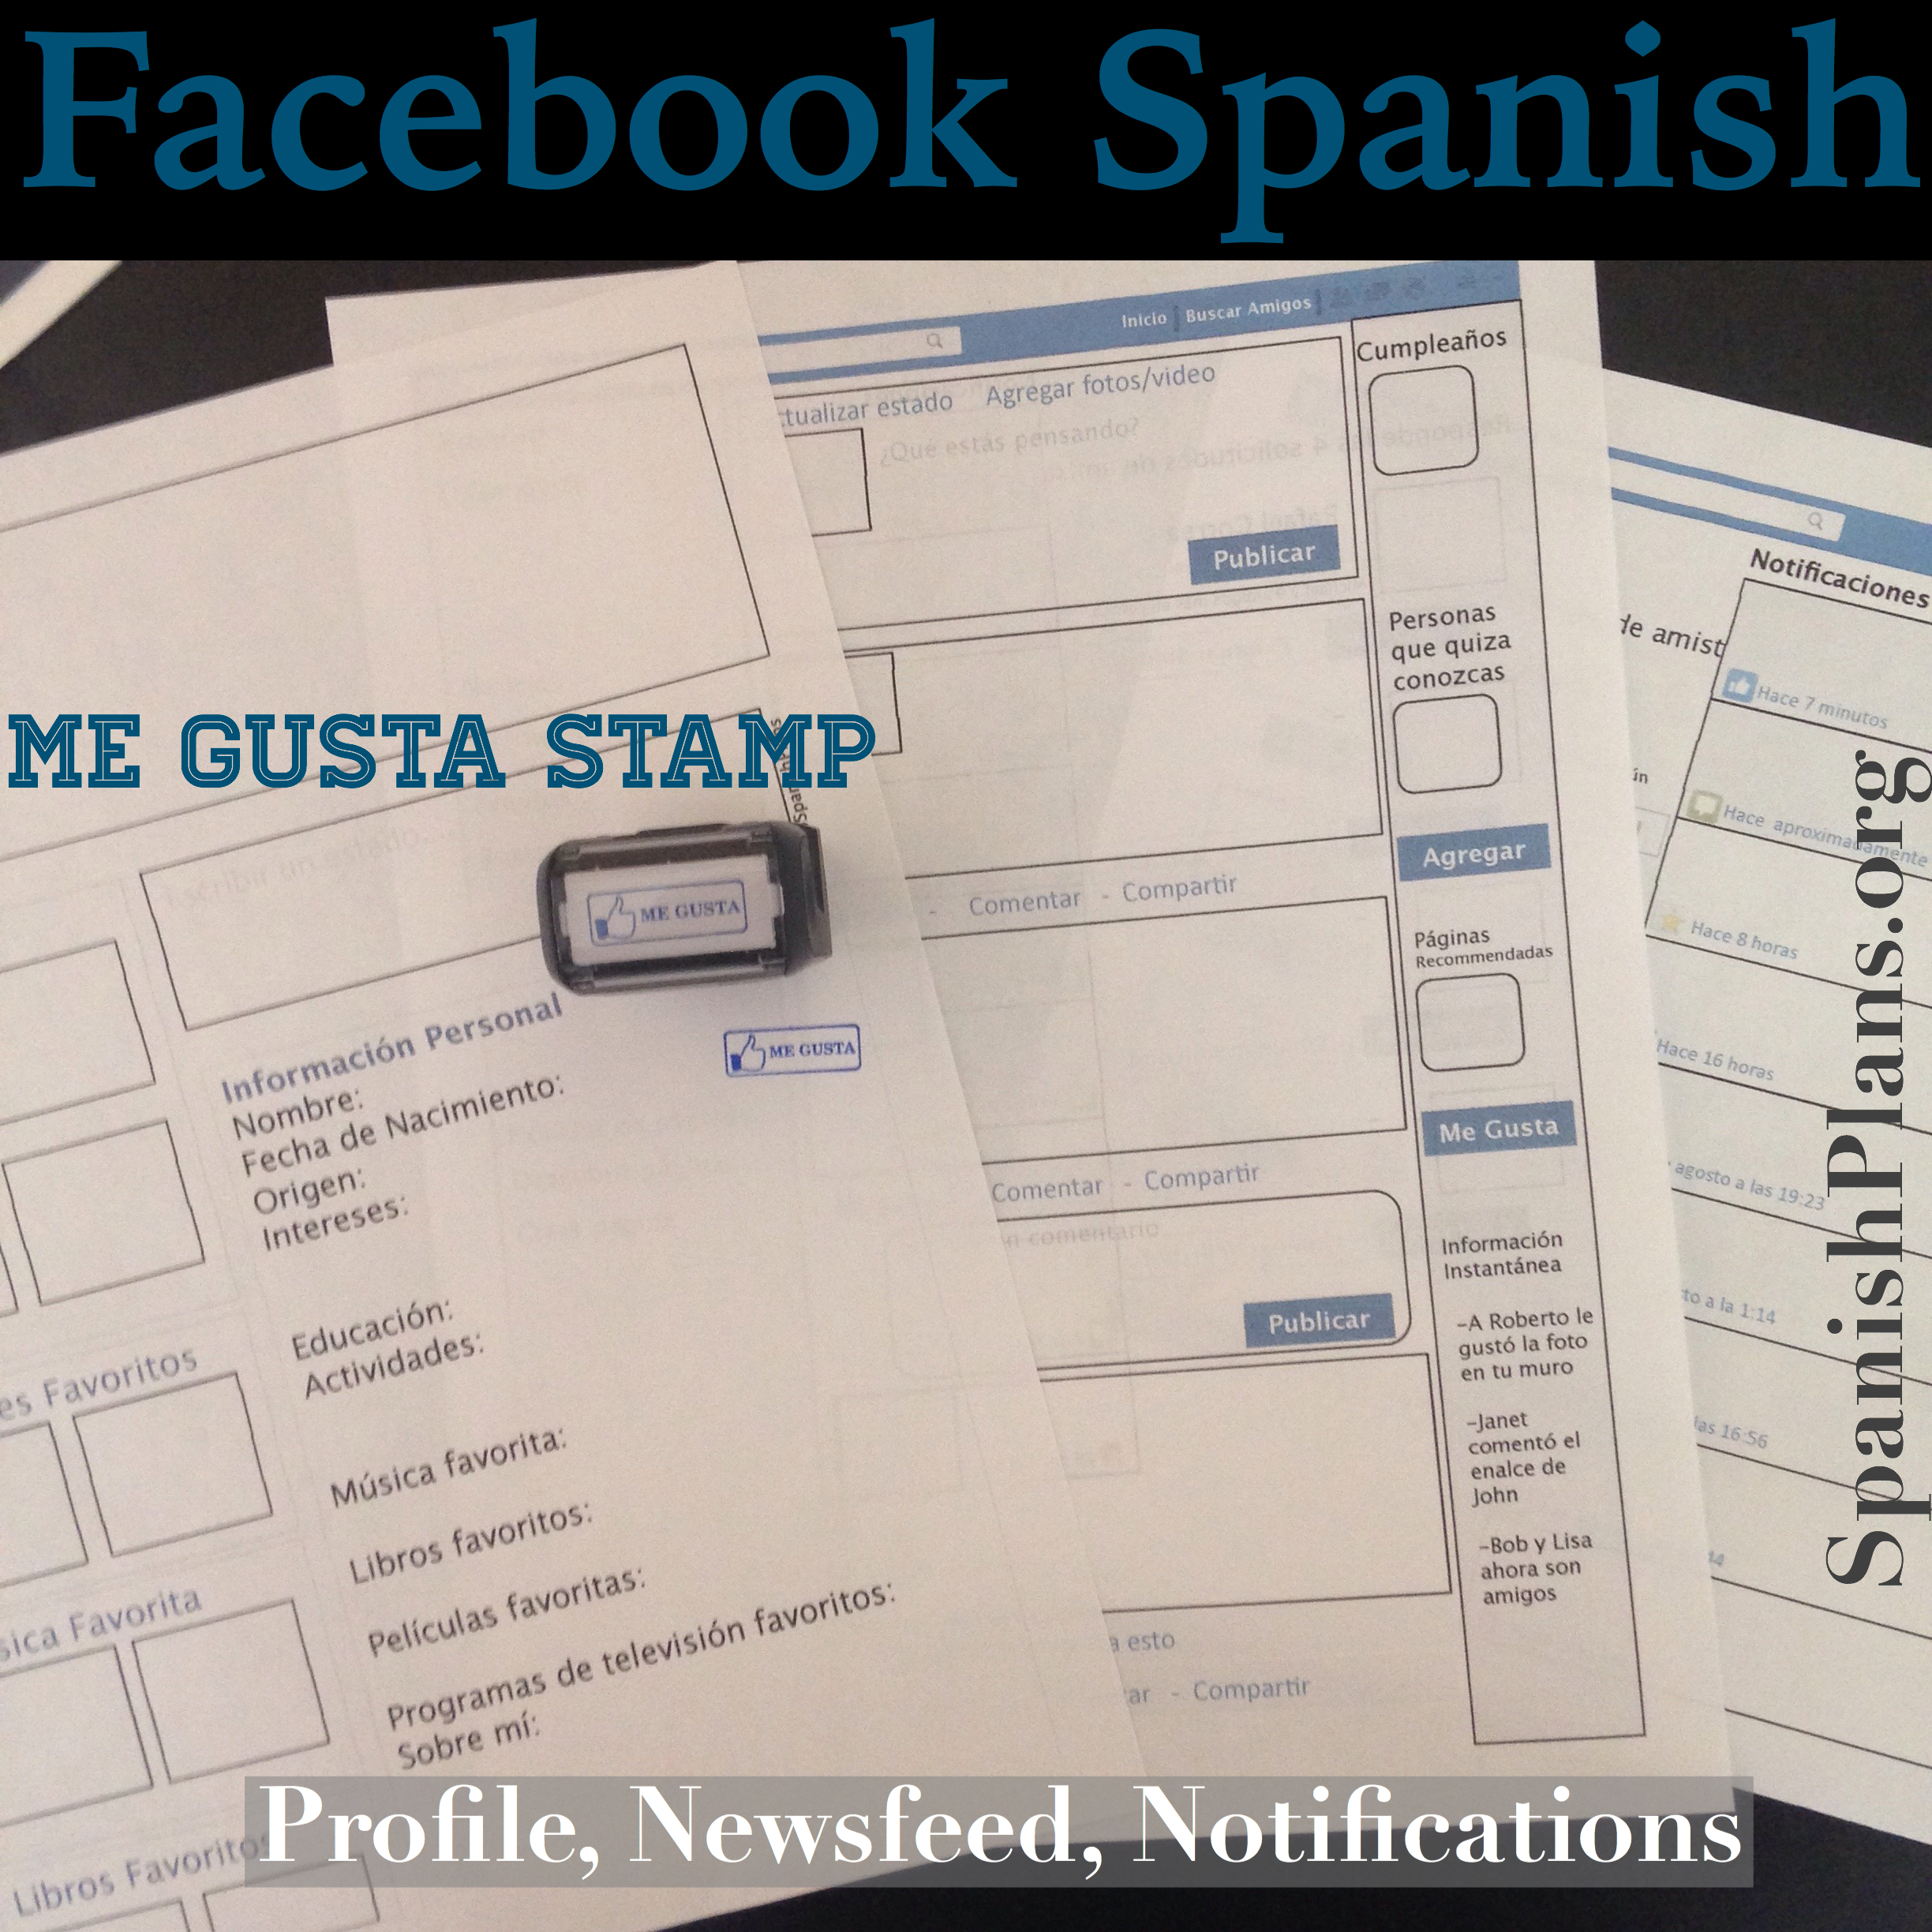 facebook templates for projects - spanish facebook template bing images